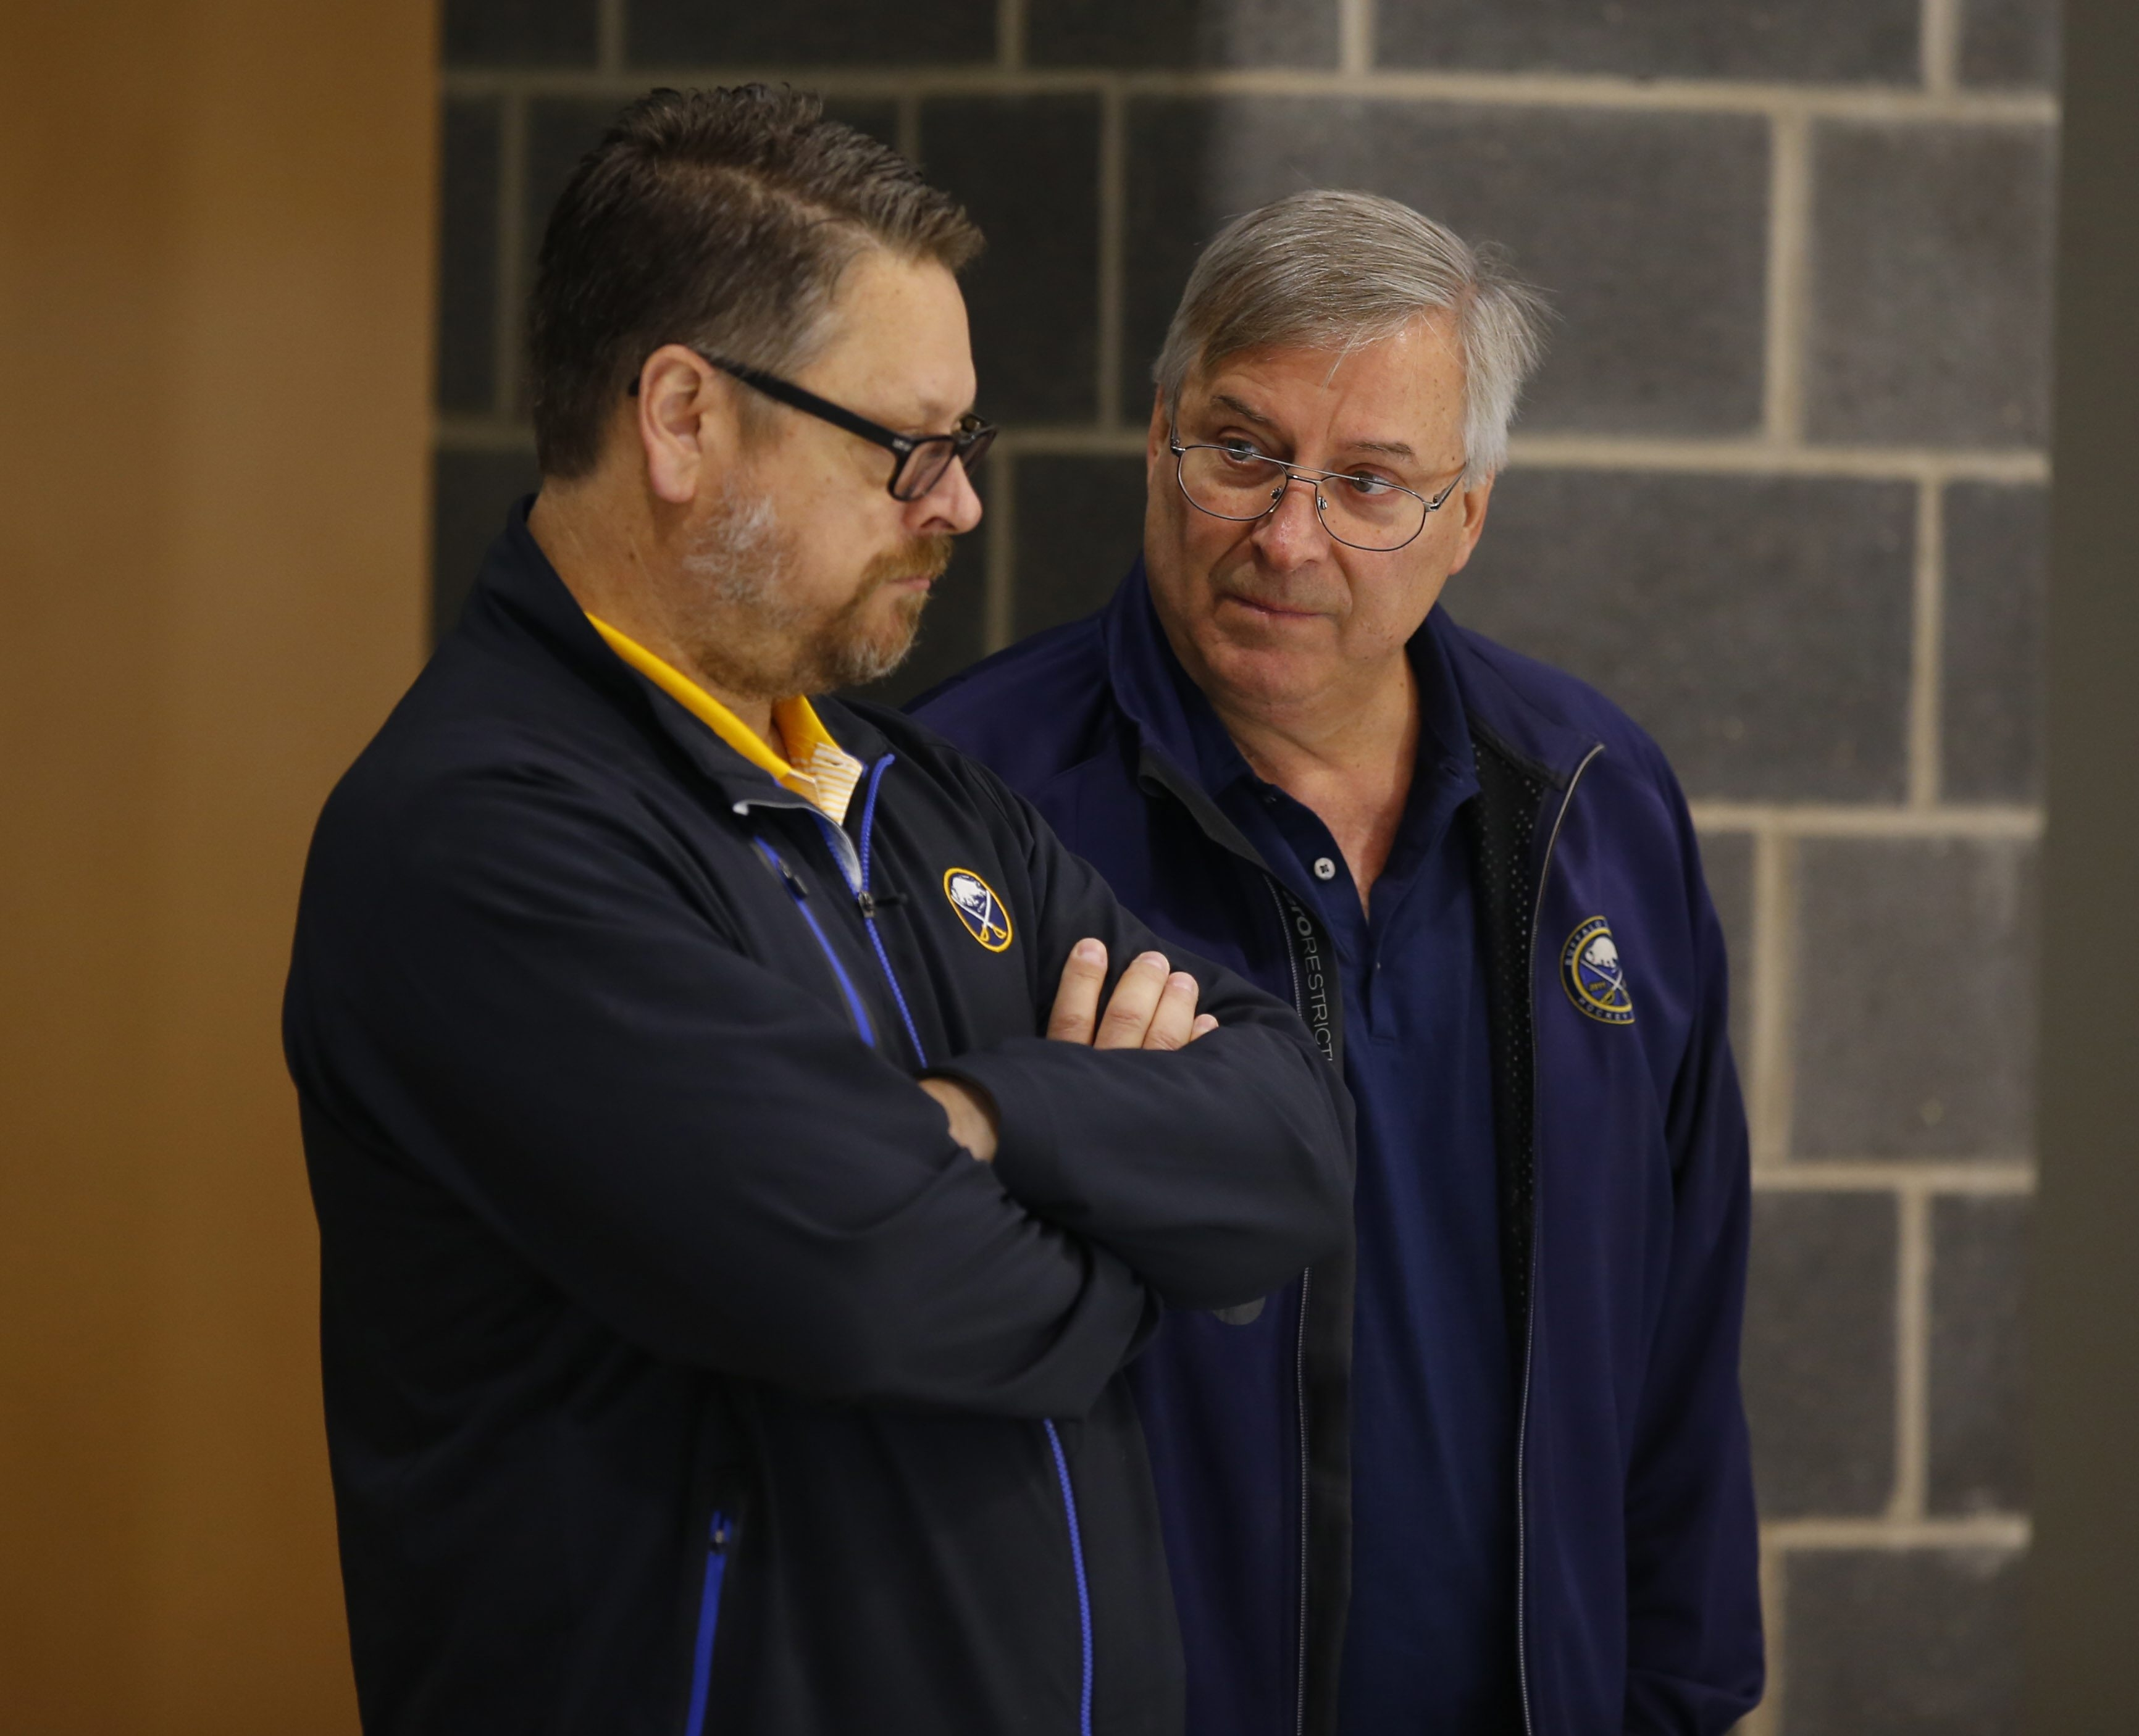 Buffalo Sabres owner Terry Pegula, right, huddles with General Manager Tim Murray on Tuesday during the three-on-three tournament at development camp in HarborCenter.